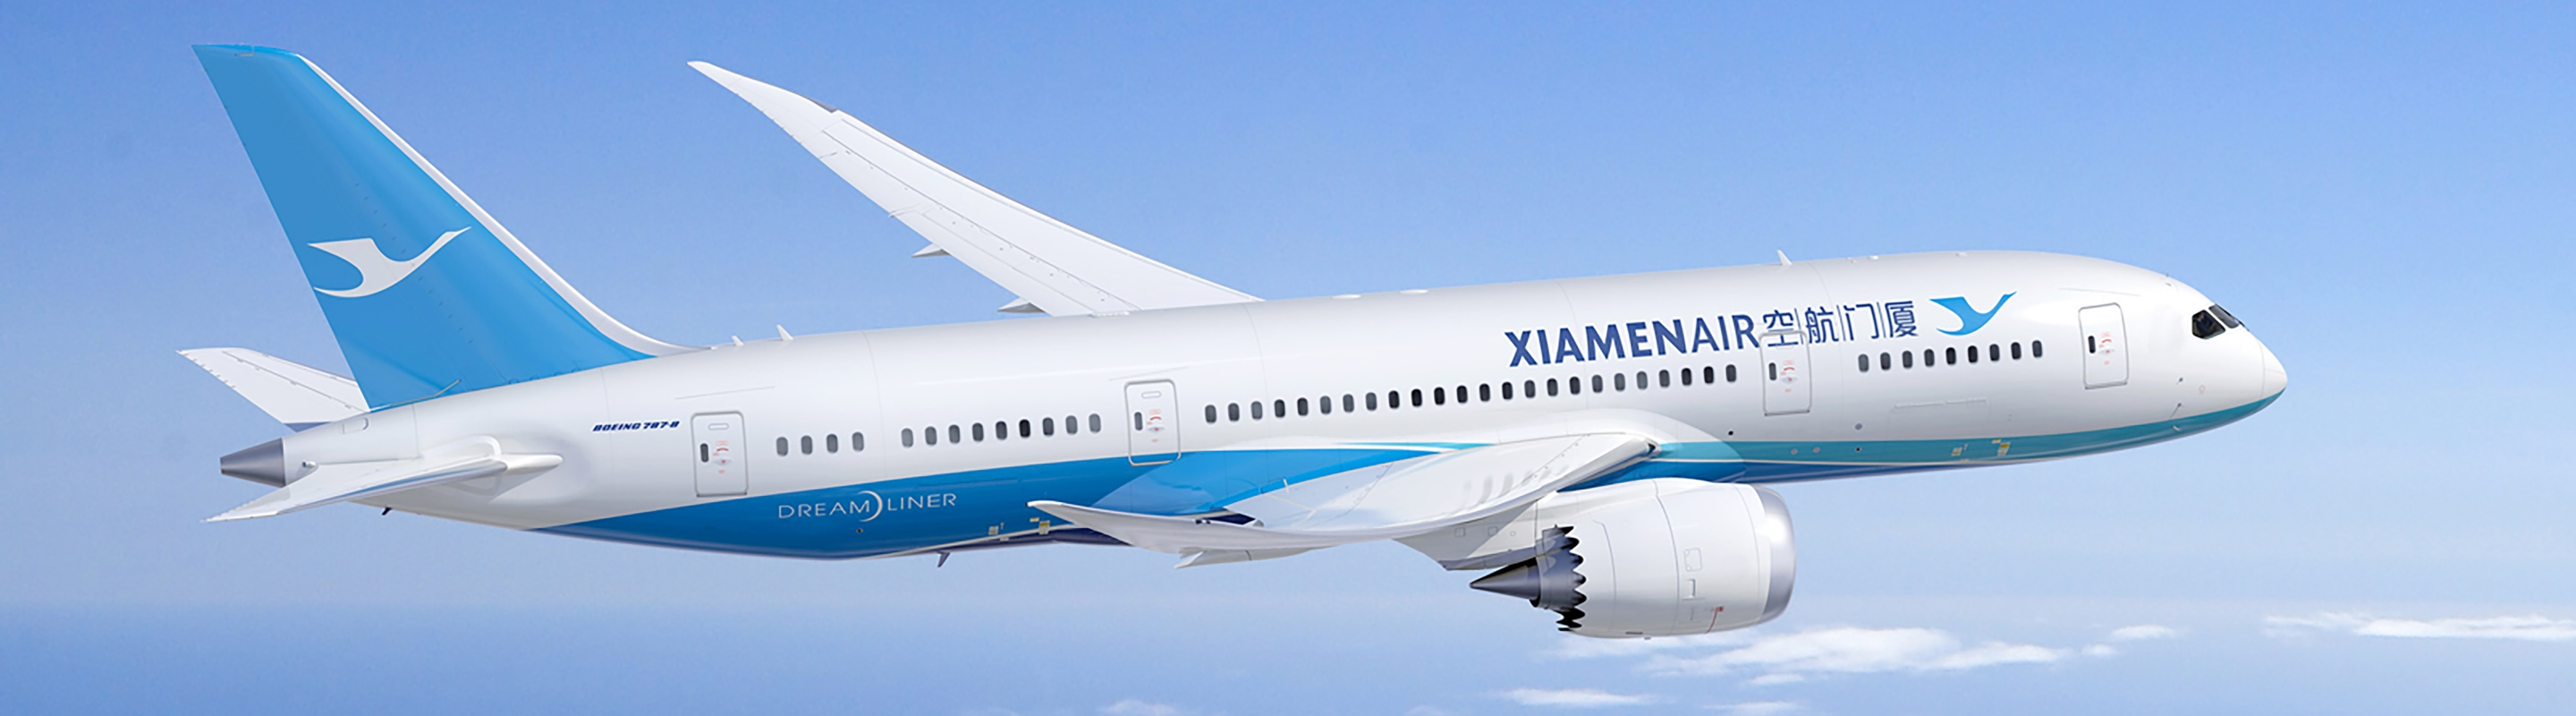 Xiamen Airlines aircraft